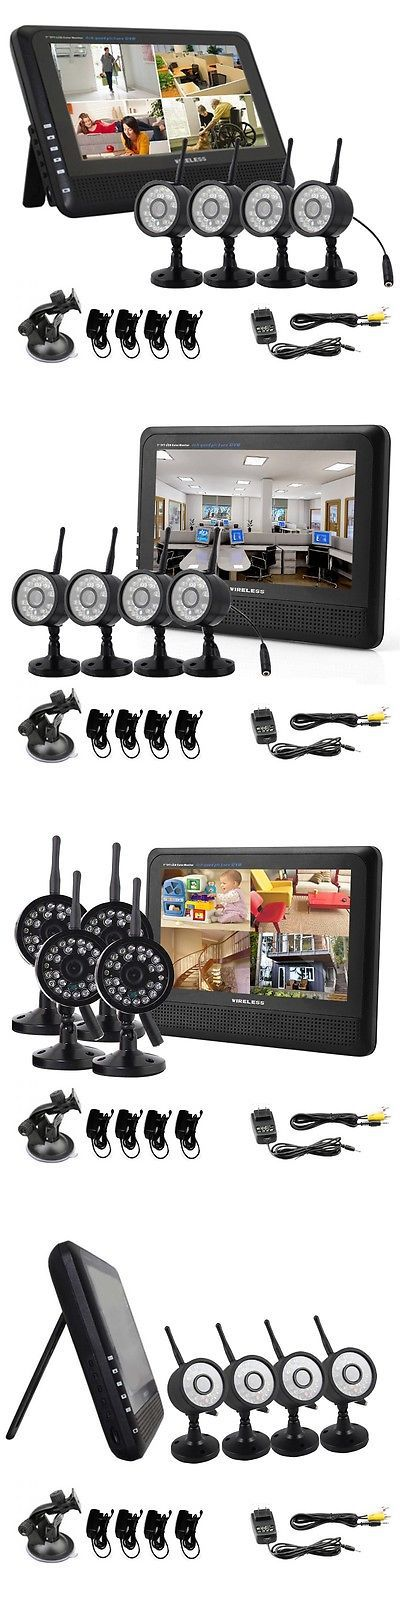 Security Cameras: Wireless Security Spy Camera System 4Ch Ir Nightvision Indoor Dvr Cctv 2.4Ghz BUY IT NOW ONLY: $163.99